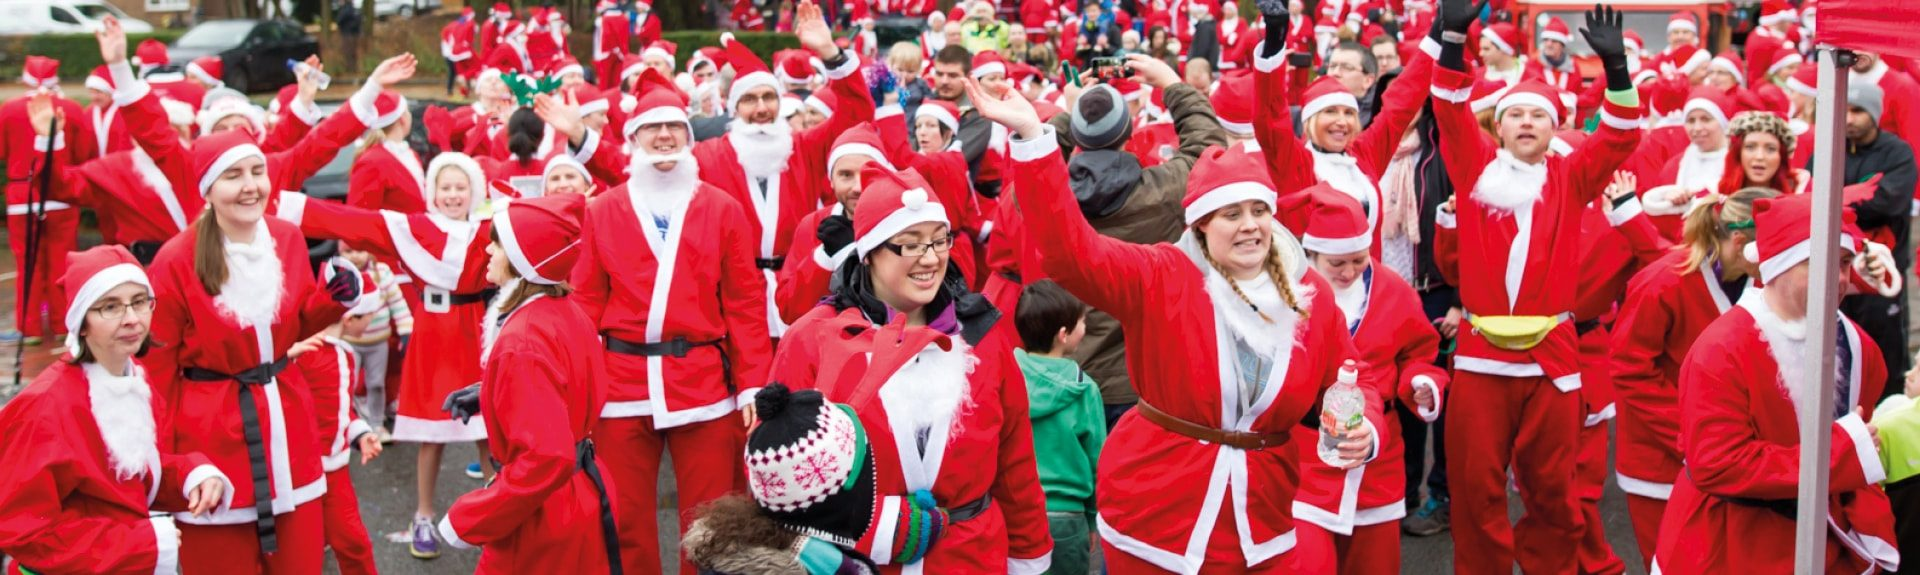 The Myton Hospices - Home Page Banner - Santa Dash 2017